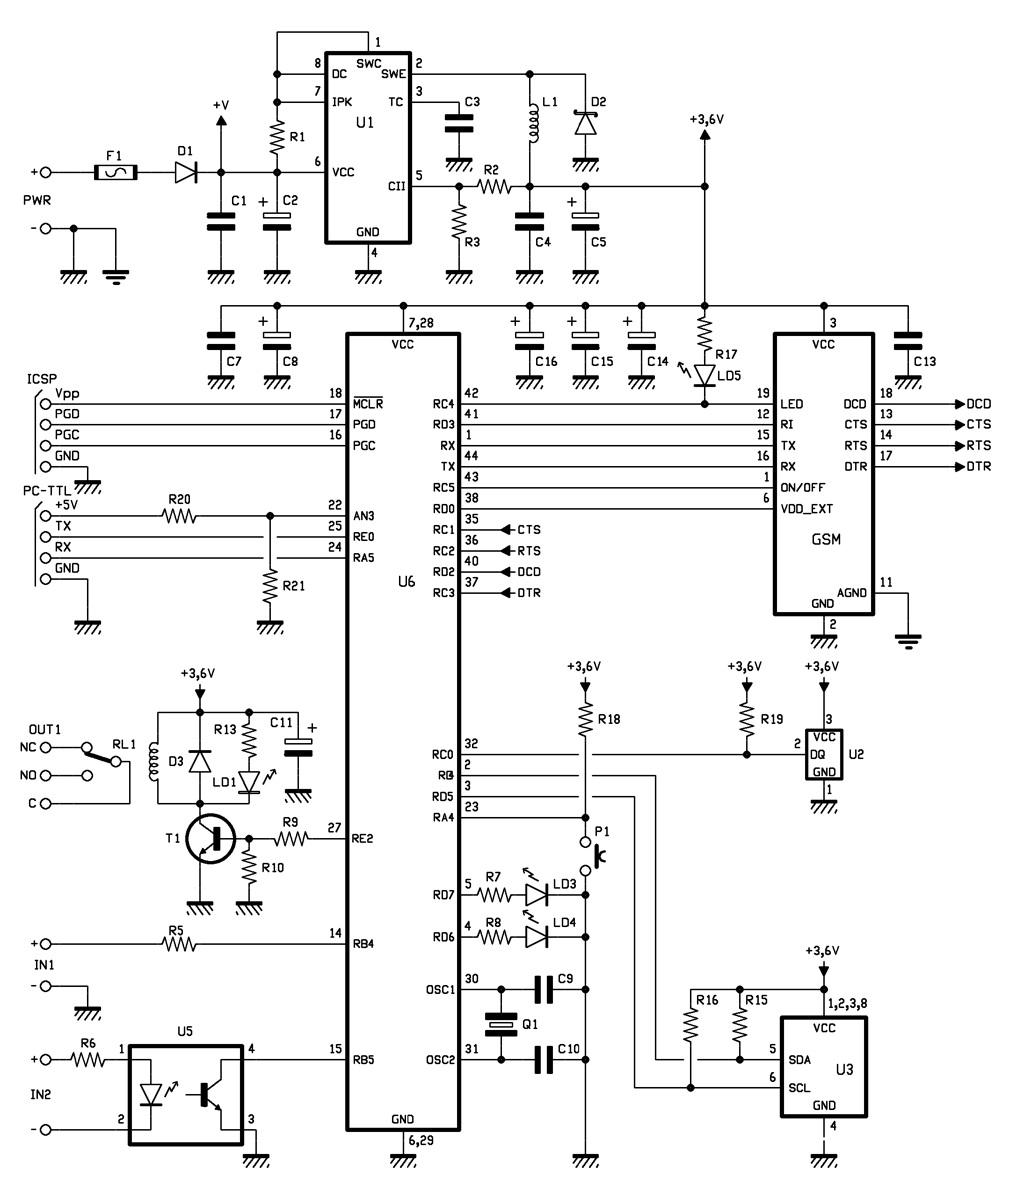 Results Page 17 About Refer Text Searching Circuits At Http Circuitdiagramhqewnet Adjustablevoltageregulatorcircuit Gsm Remote Control Temperature Schematic